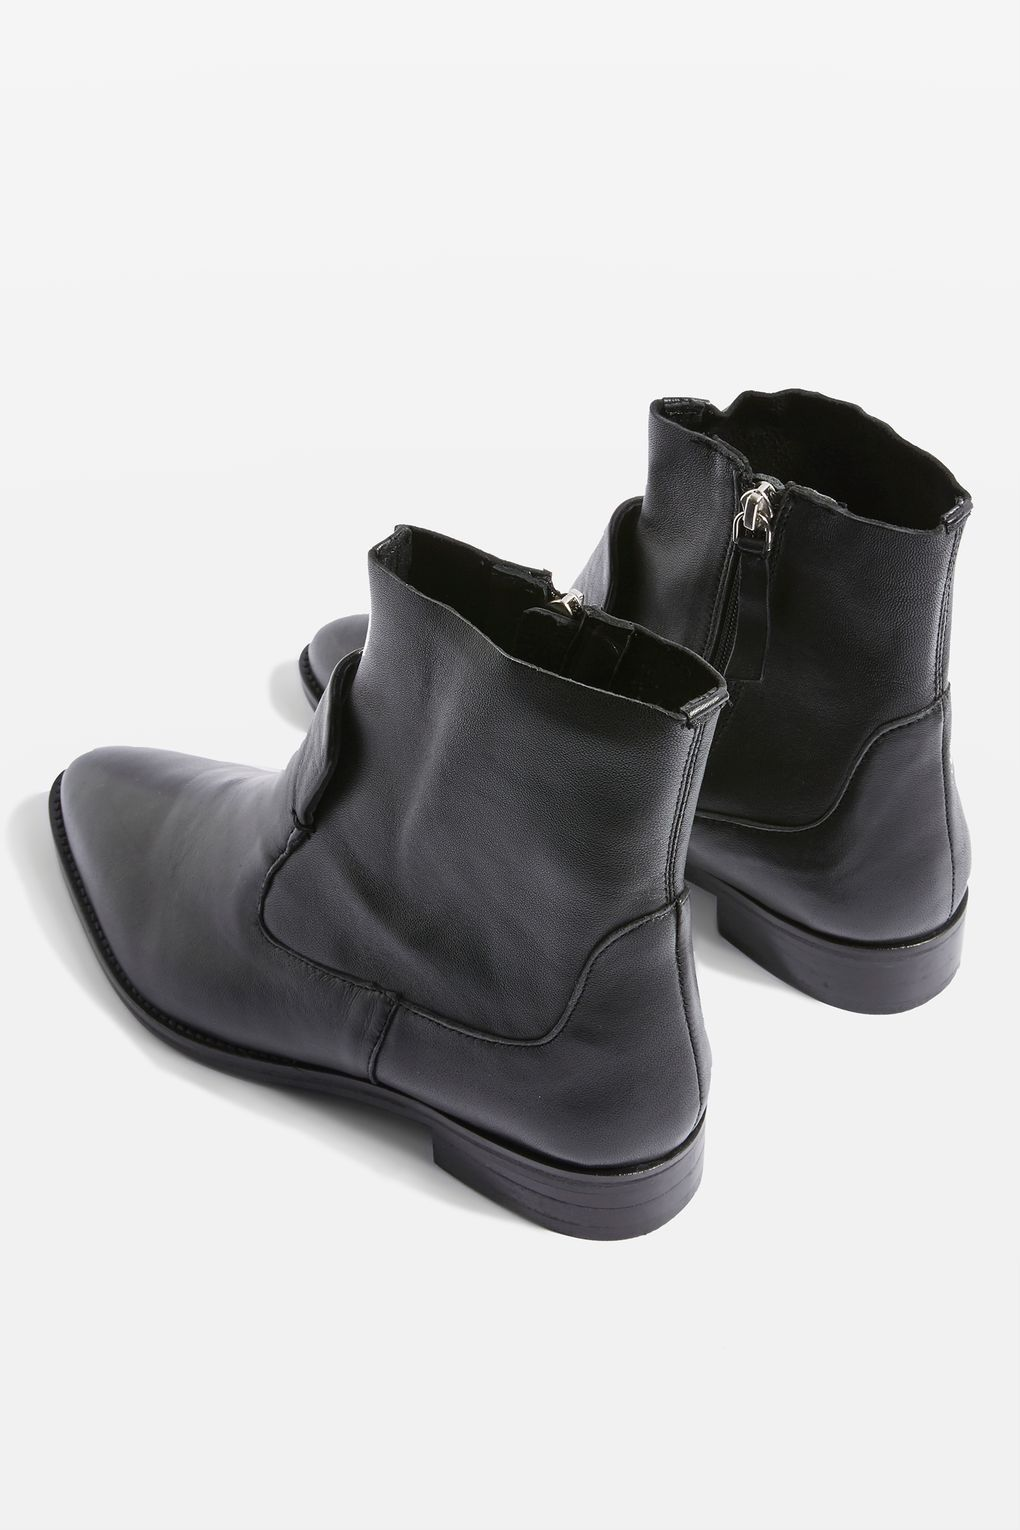 new arrival for sale TOPSHOP Pablo Ankle Boots lowest price free shipping comfortable aSpoLoMAq